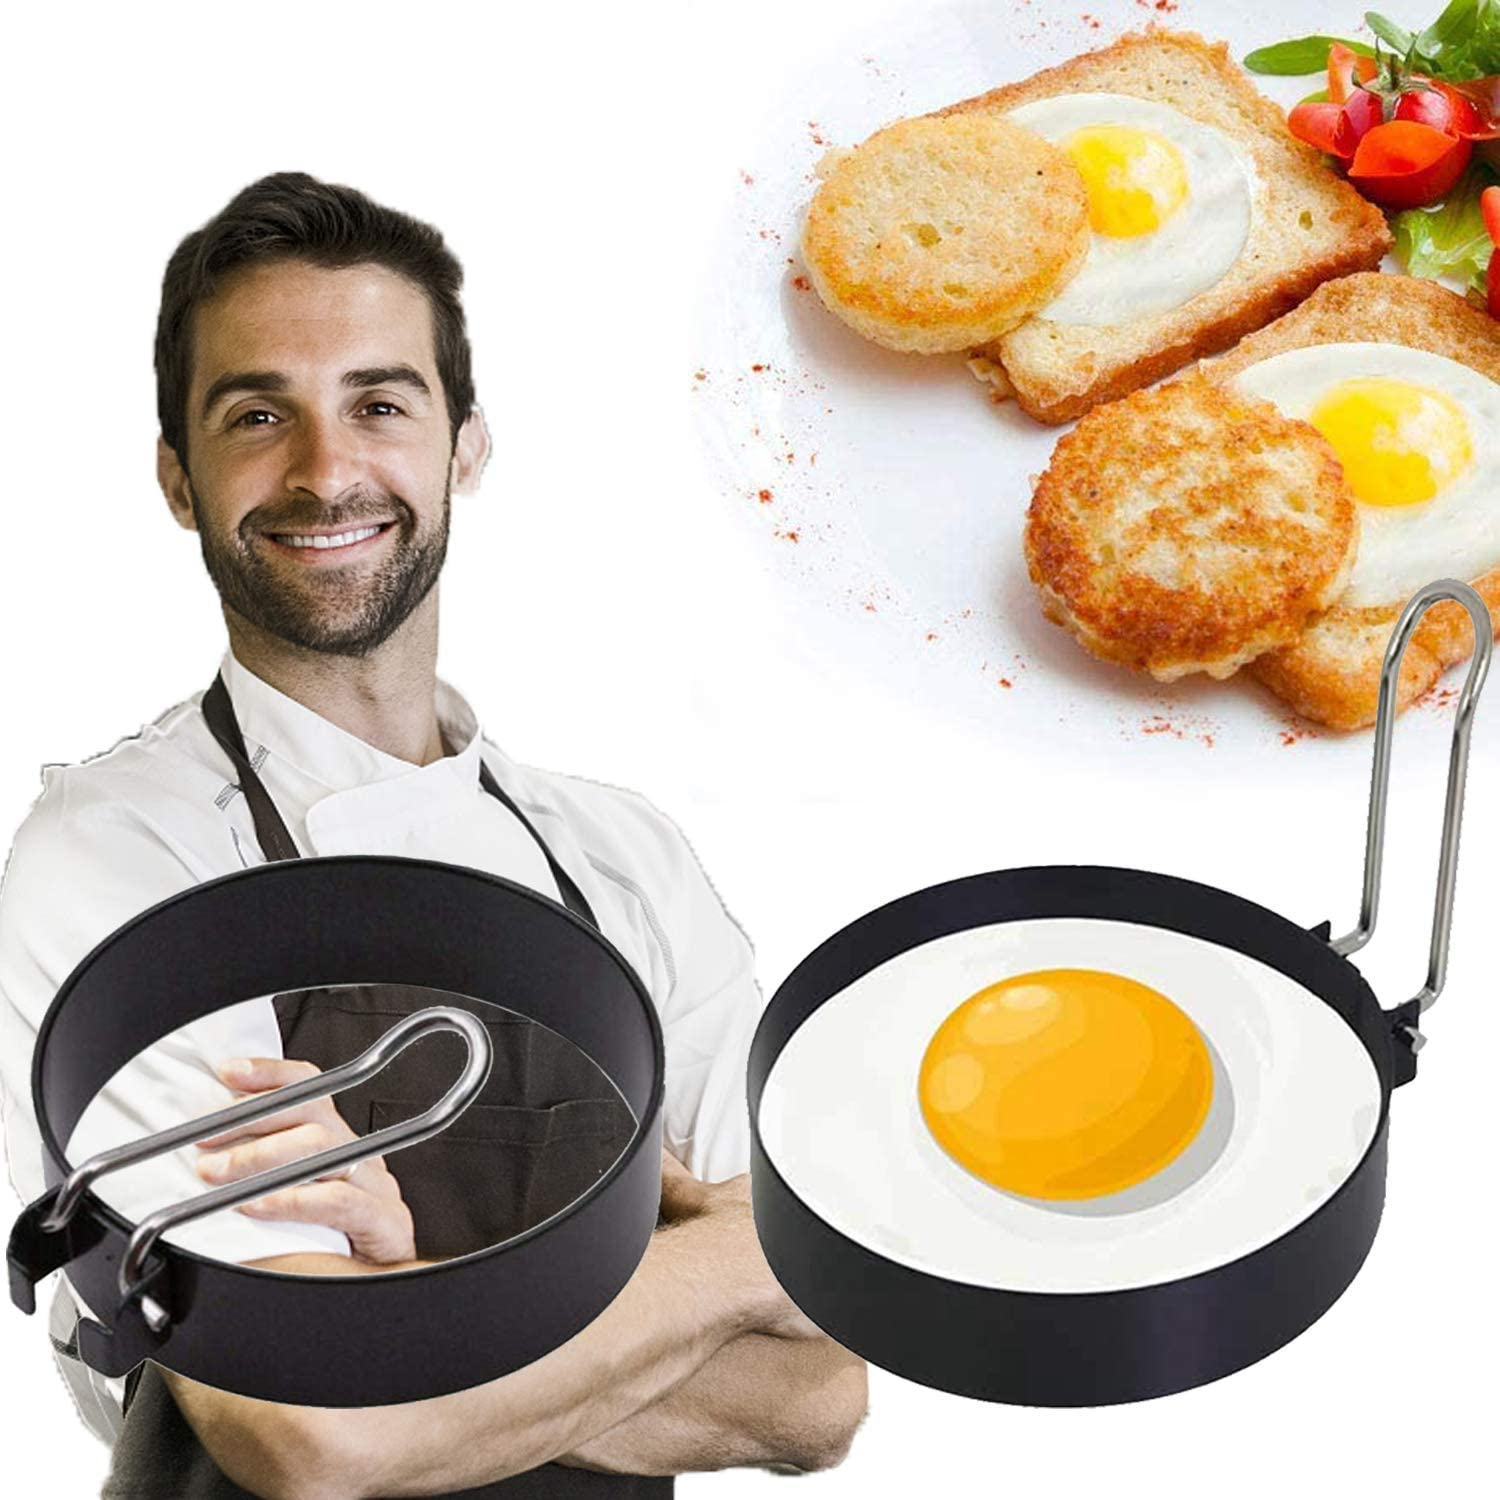 2Pcs Egg Ring, Round Egg Cooker Rings, Stainless Steel Non Stick Egg Mcmuffin Maker Egg Molds For Frying Mold Shaper Circles Egg Ring For griddle Cooking Fried Shaping Egg, Pancakes, Sandwiches